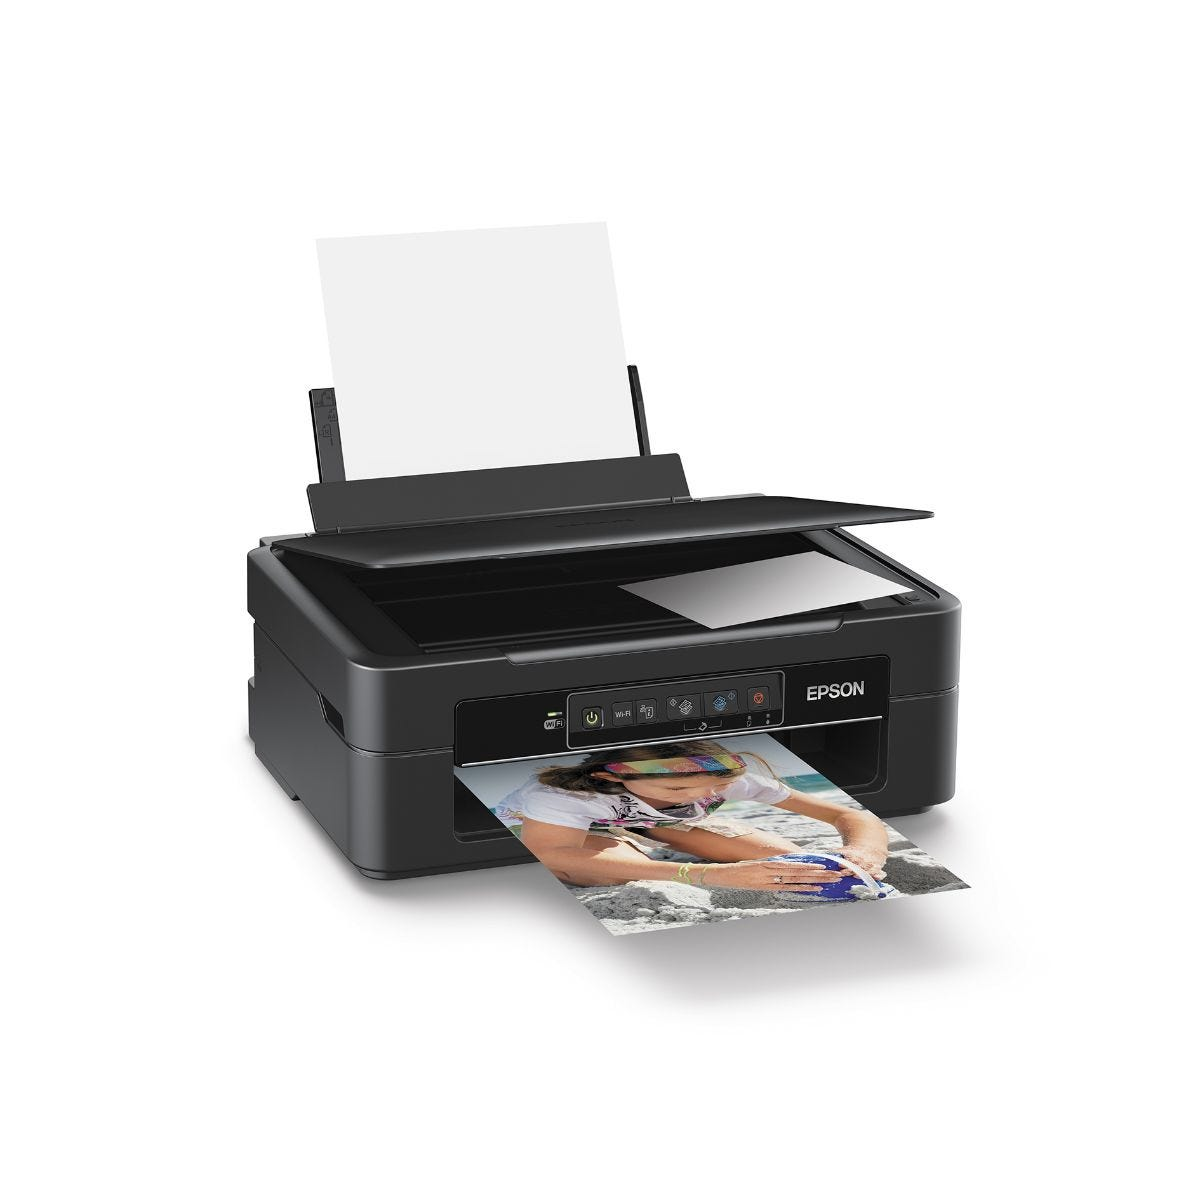 Epson Expression Home XP235 All in One Printer